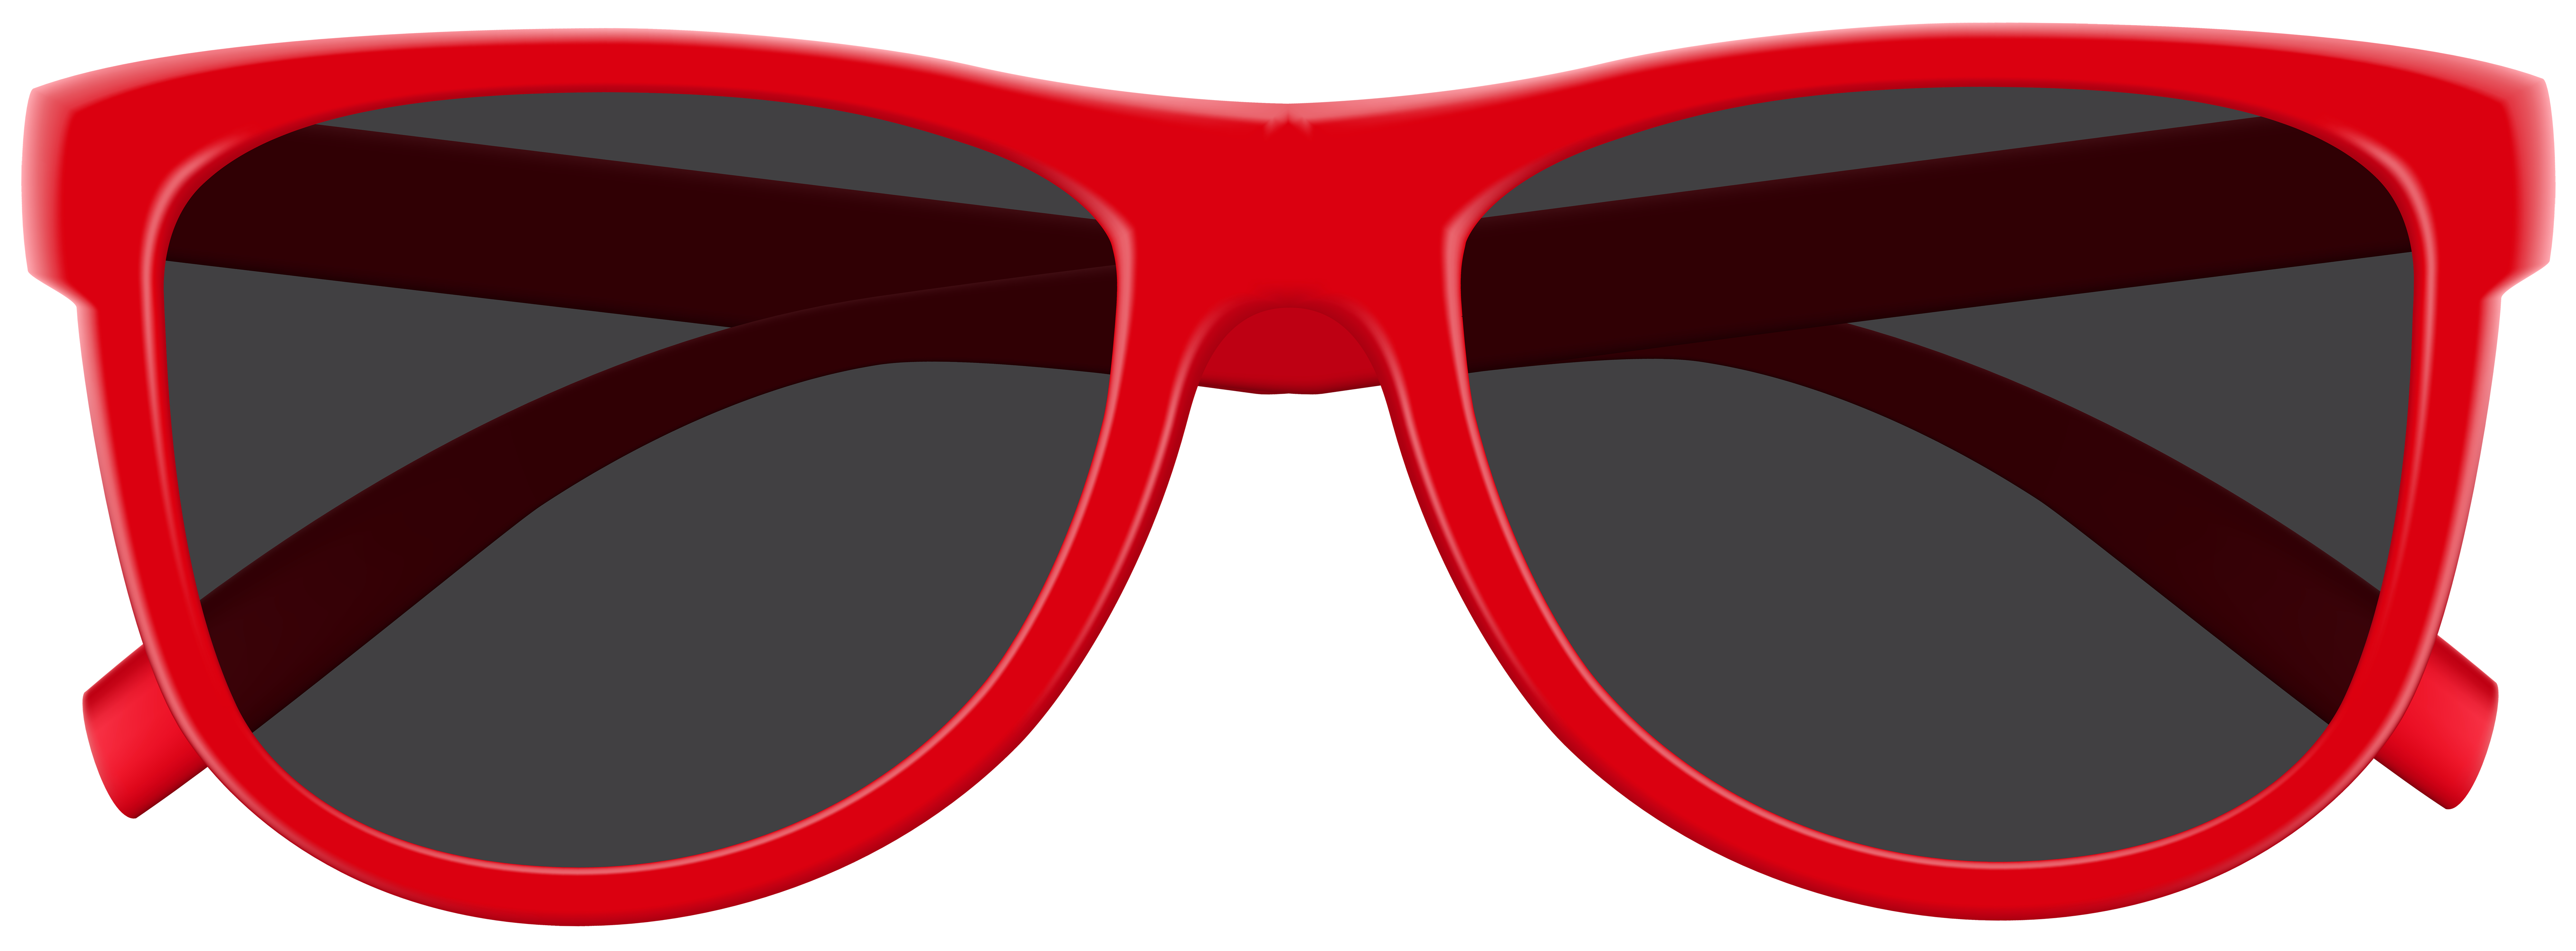 Clipart sunglasses red white blue. Png clip art image